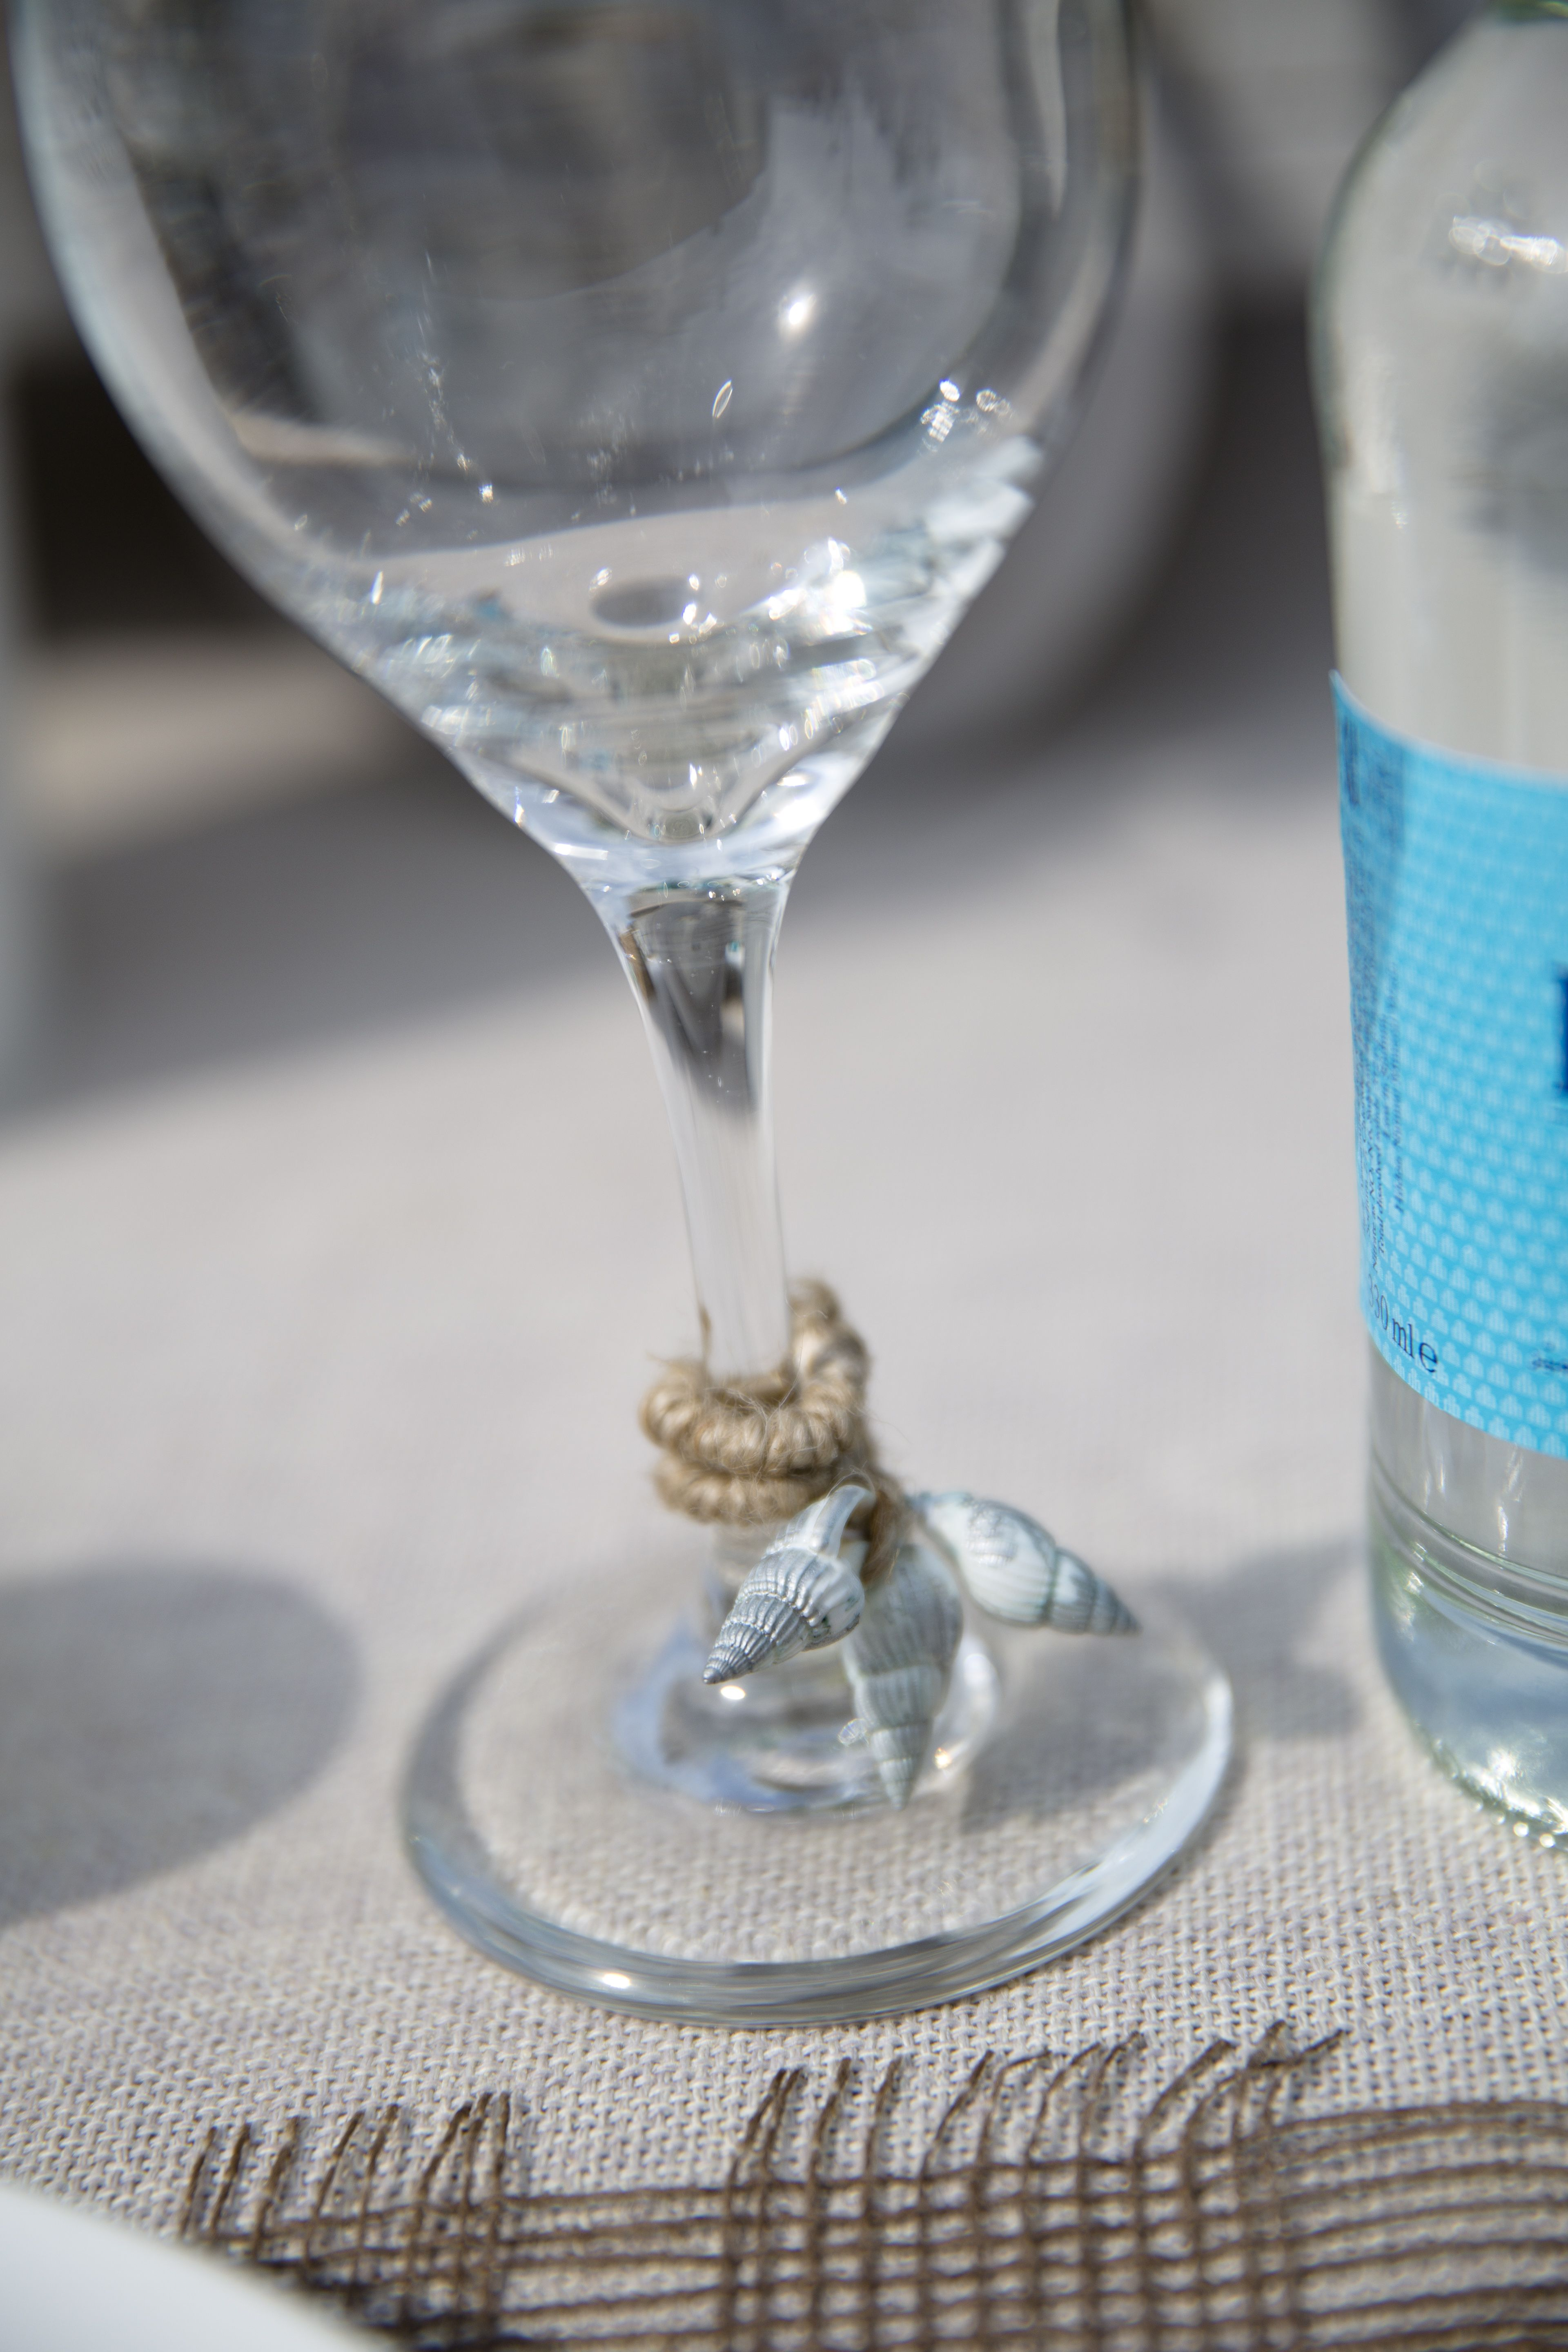 Beach Themed Table Setting Ideas Part - 50: Beach Theme Table Setting: Glass Wrapped With Shells And String